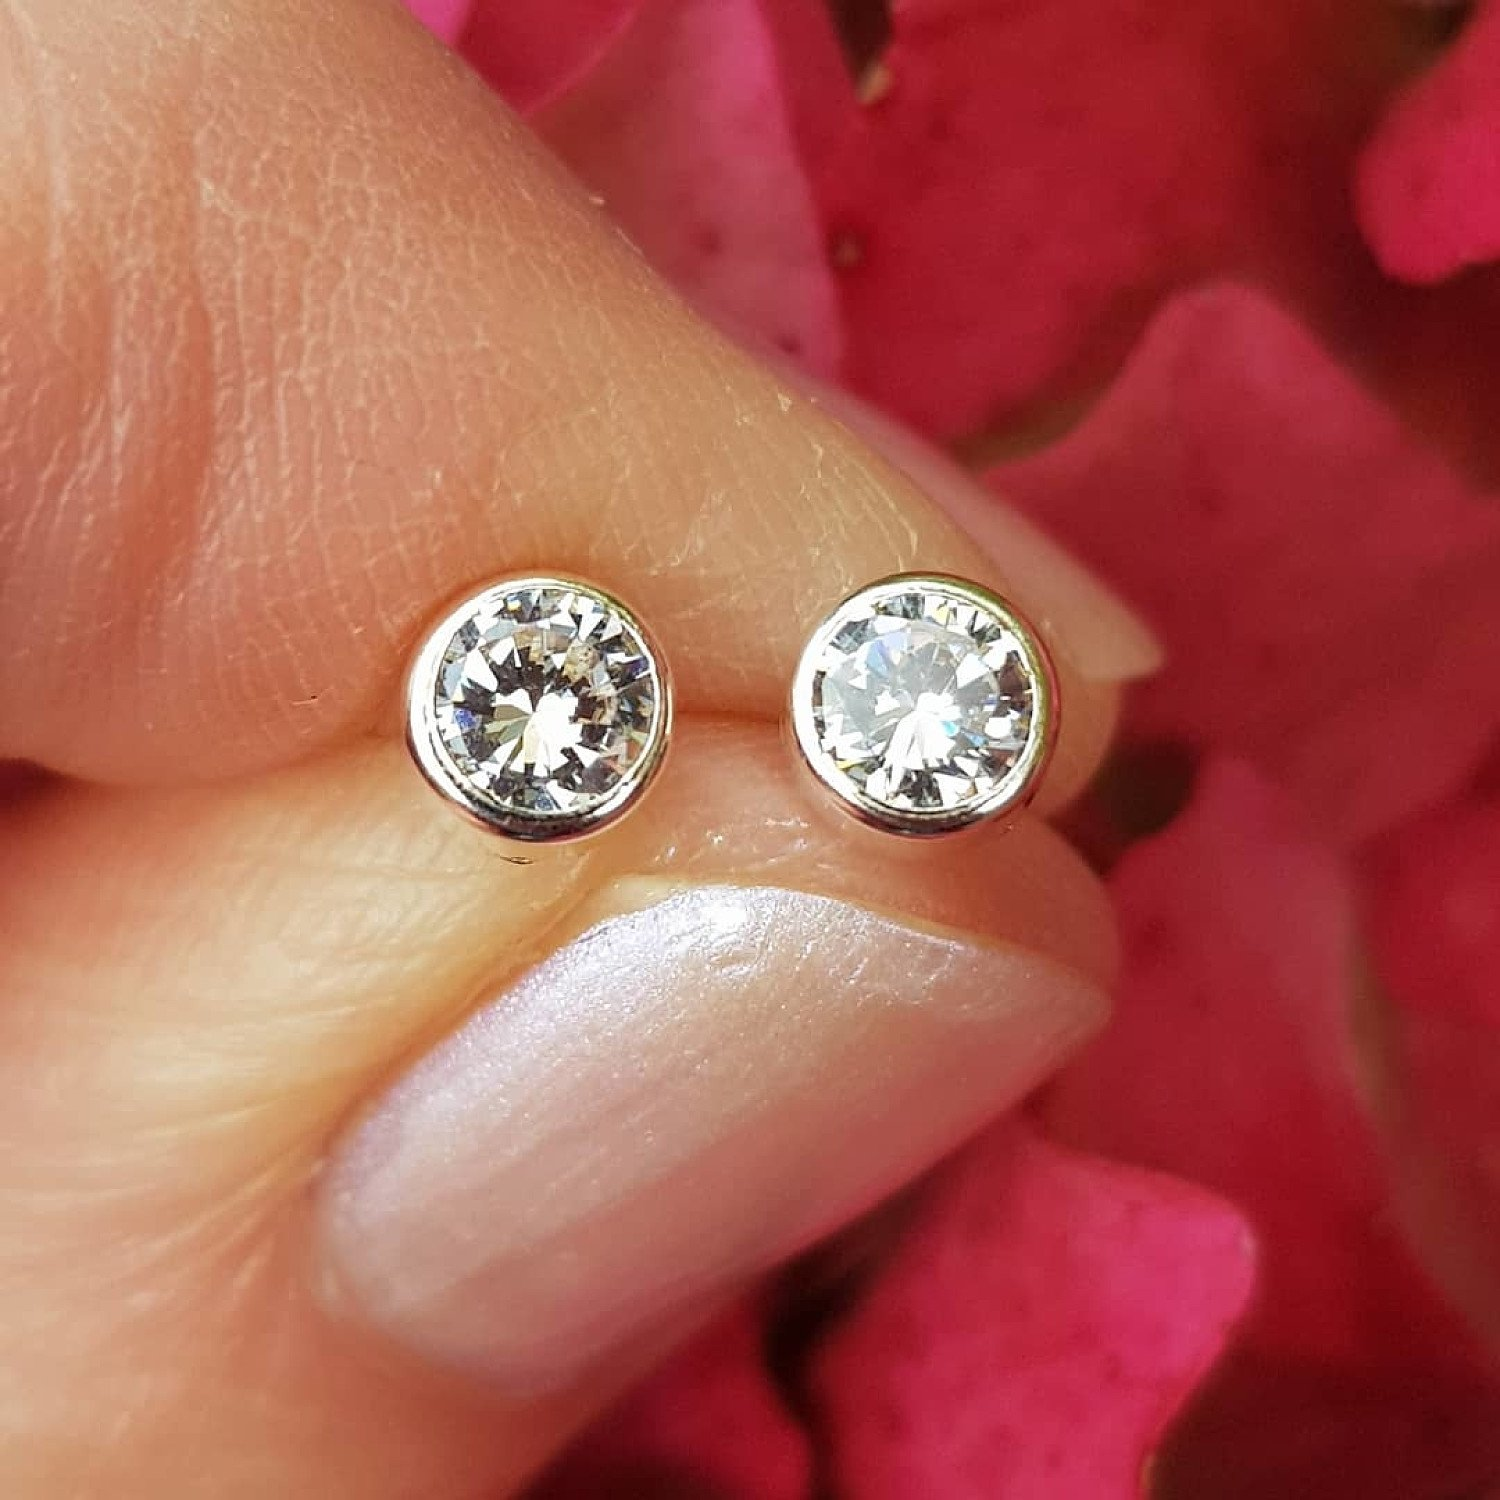 Silver cubic zirconia, 4.5mm circle stud earrings - £19 free delivery - from Callibeau Jewellery